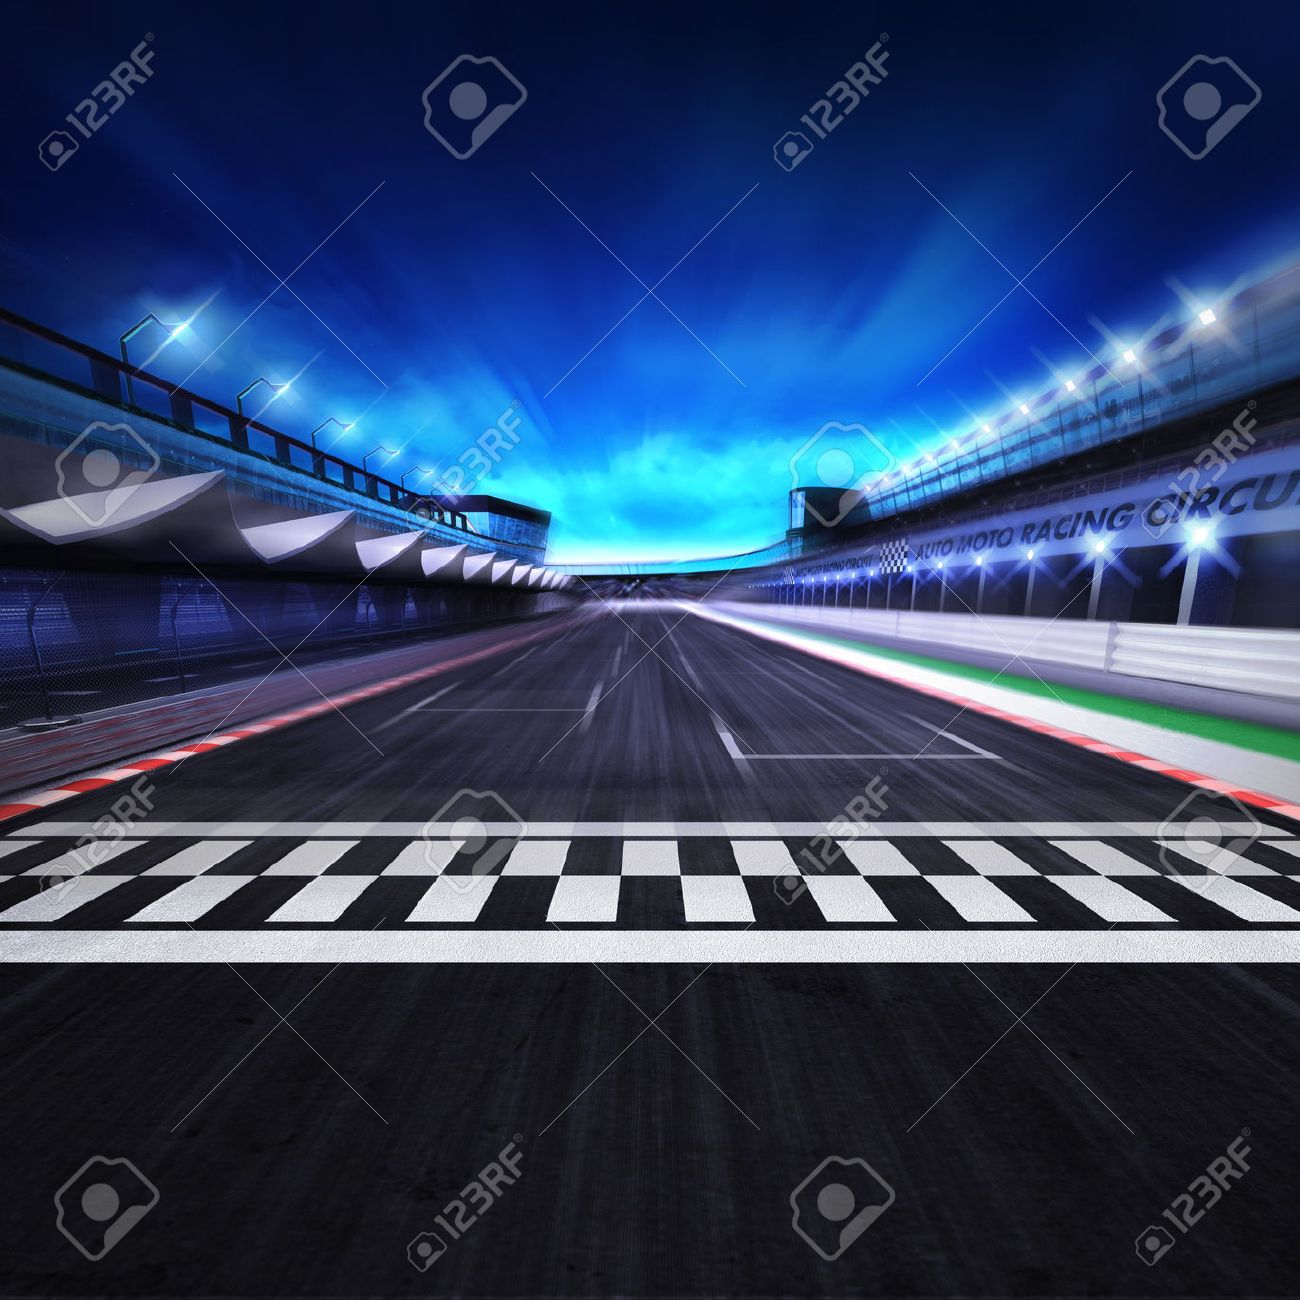 finish line on the racetrack in motion blur with stadium and spotlights,racing sport digital background illustration - 47214938